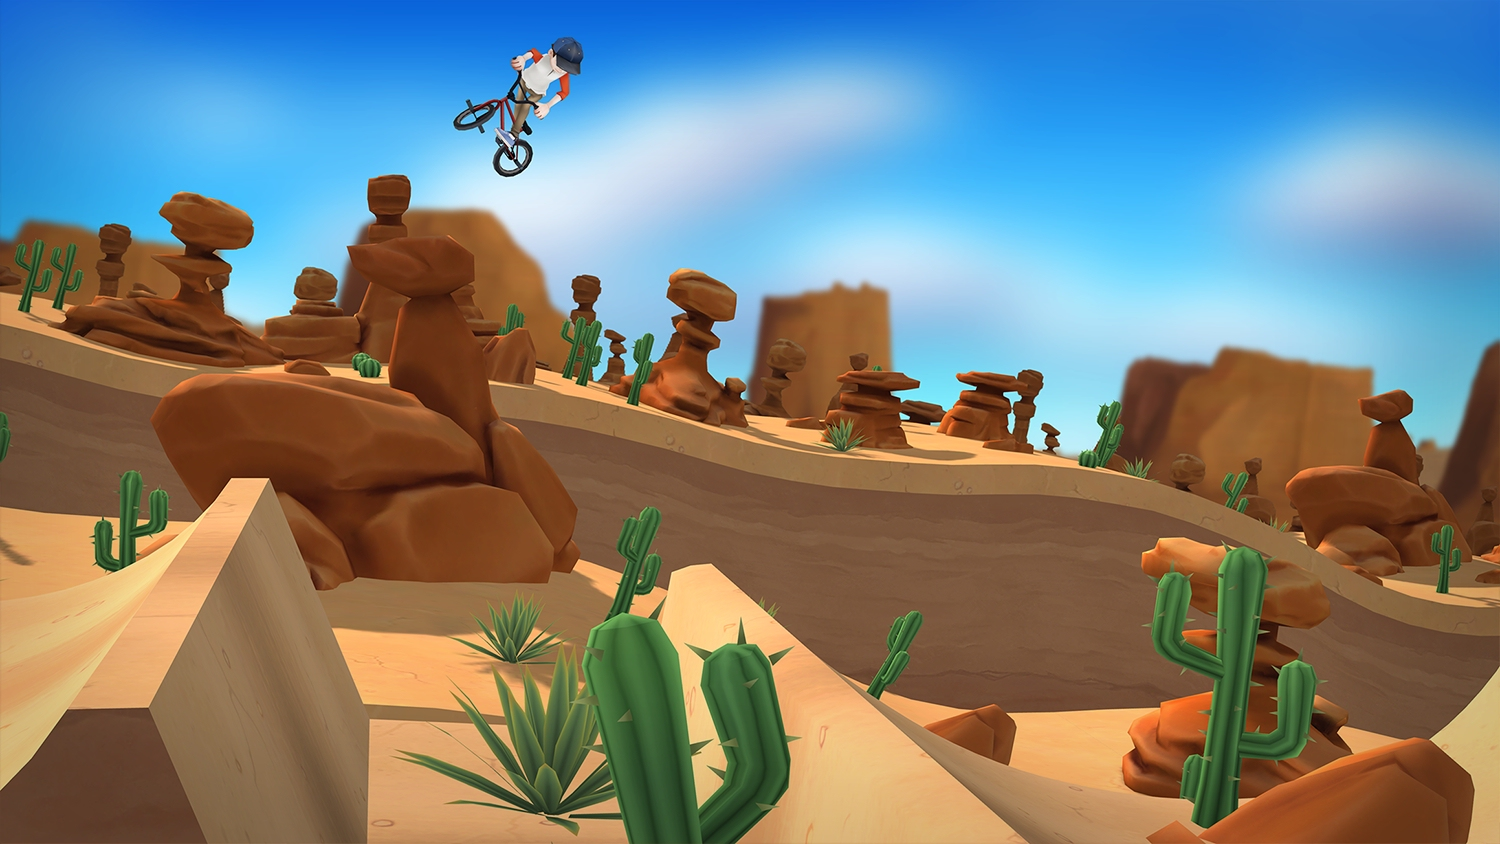 Out at midnight: Pumped BMX 2 captures the spirit of pulling off bike tricks from big air